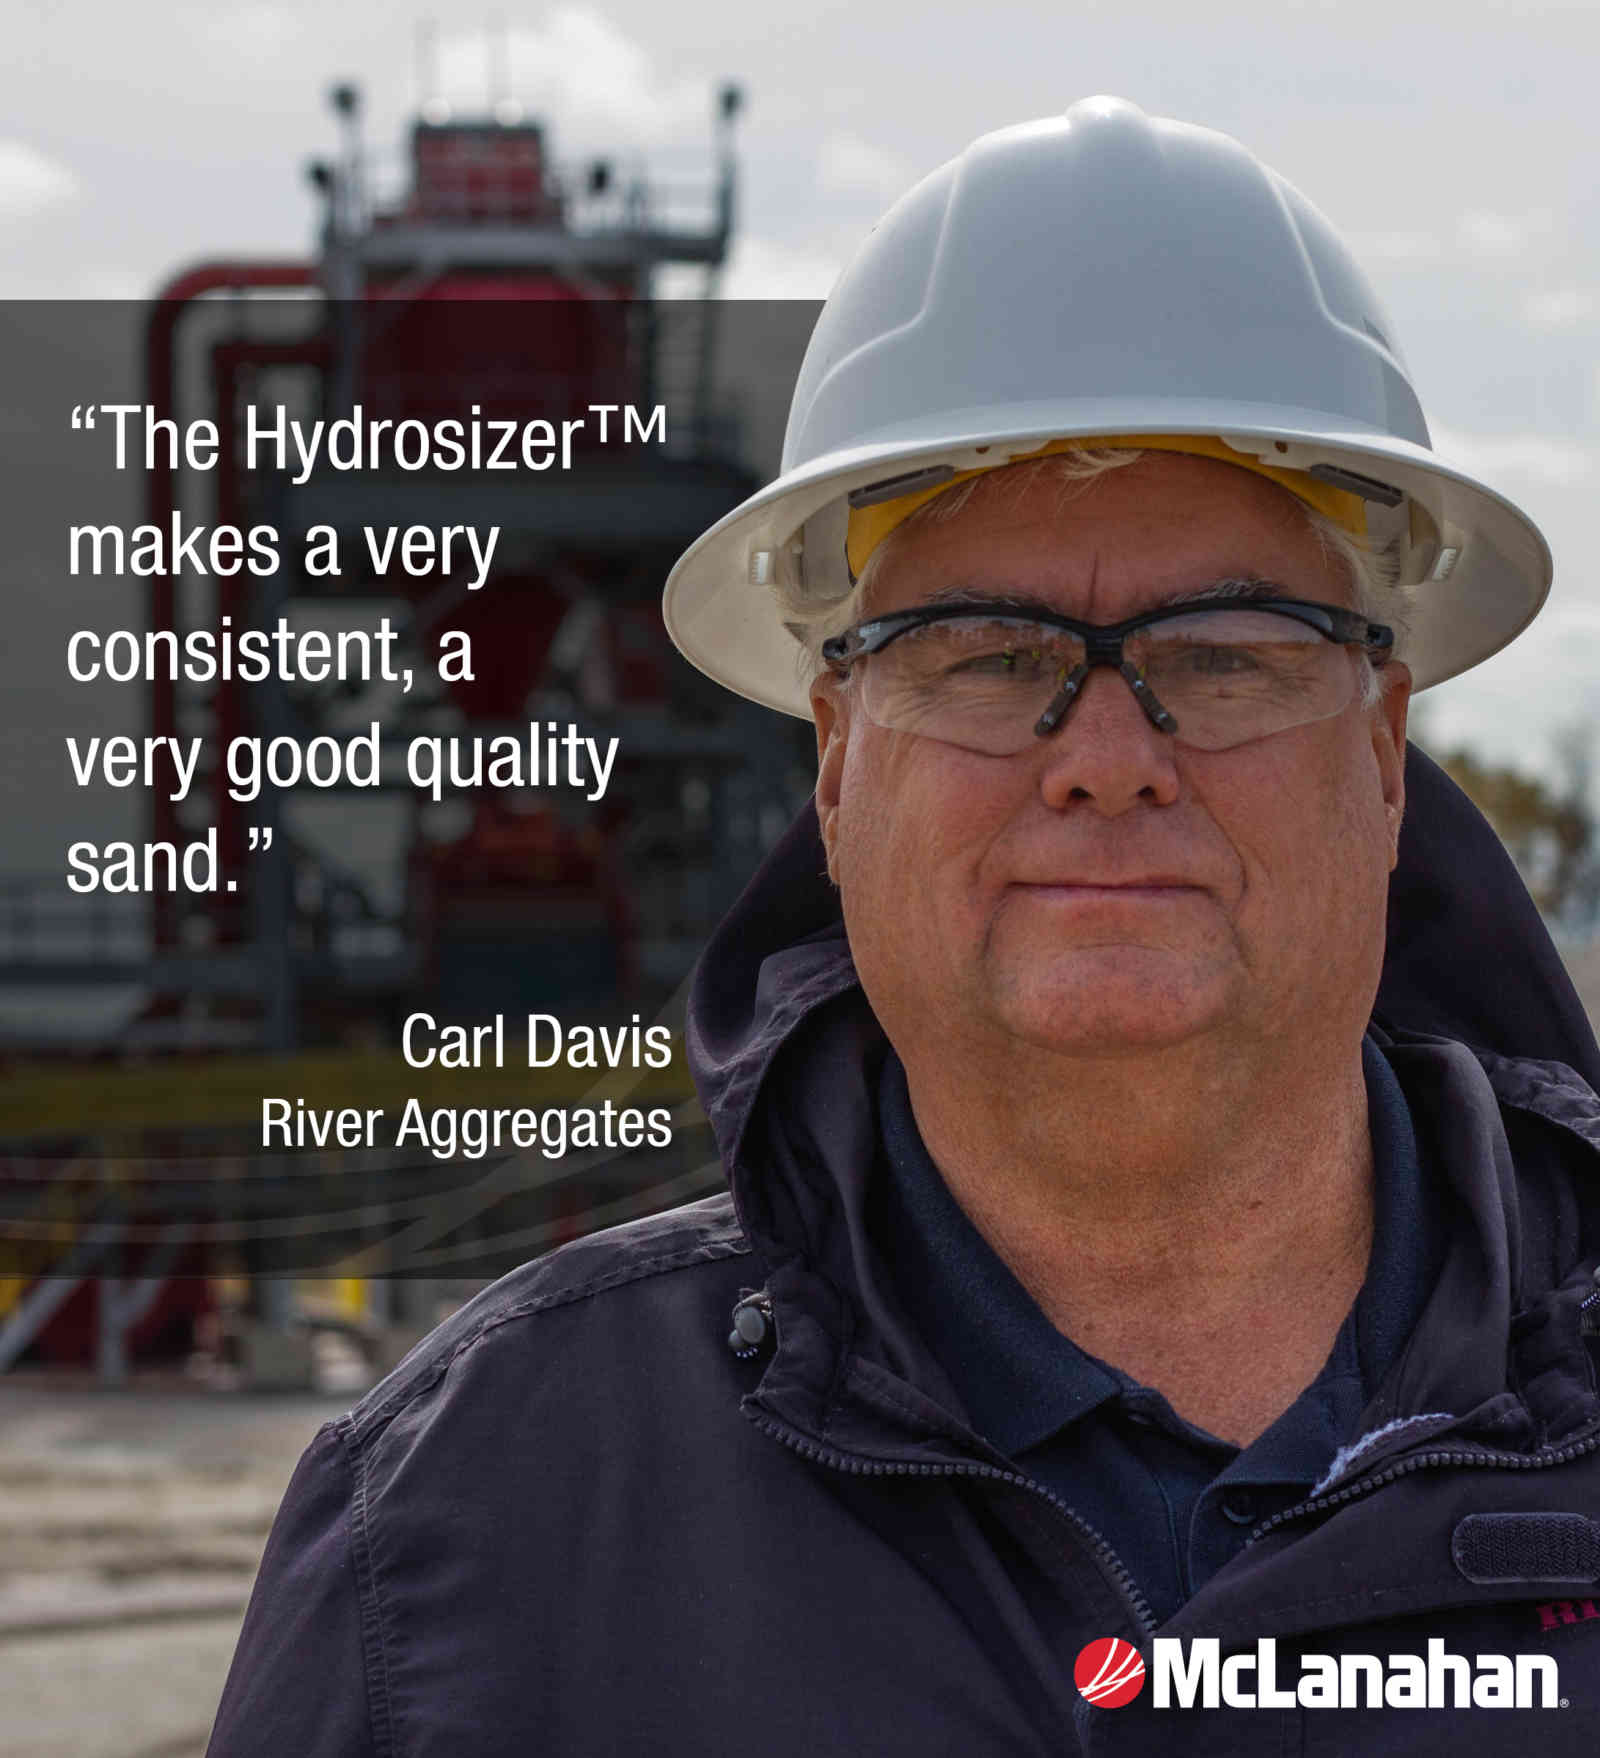 McLanahan Hydrosizer™ Gives River Aggregates Competitive Edge